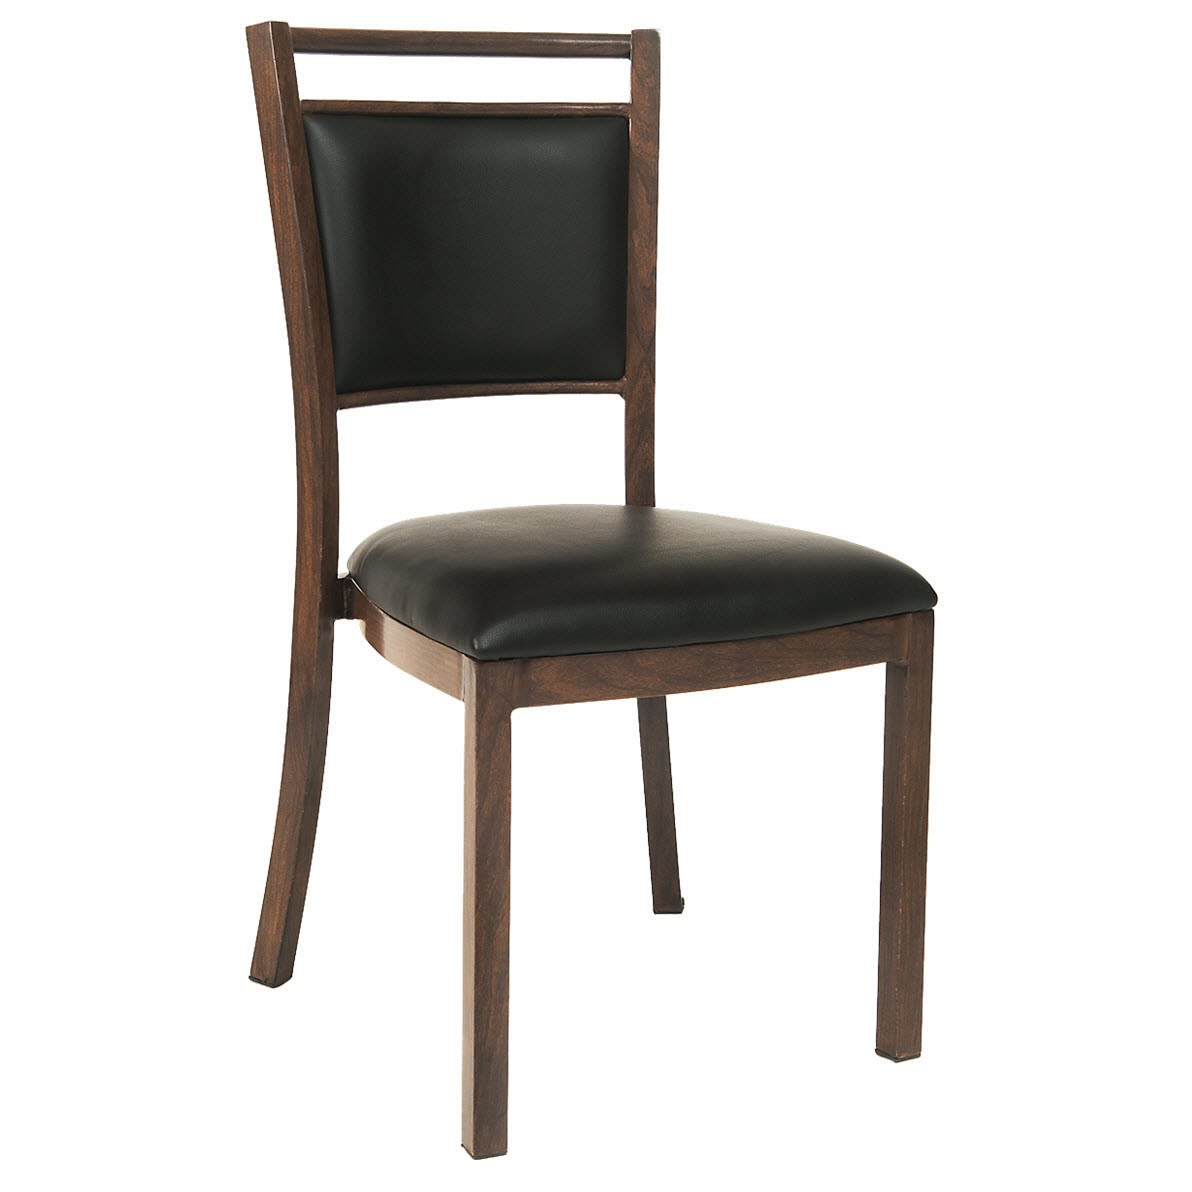 Wood Grain Aluminum Chair